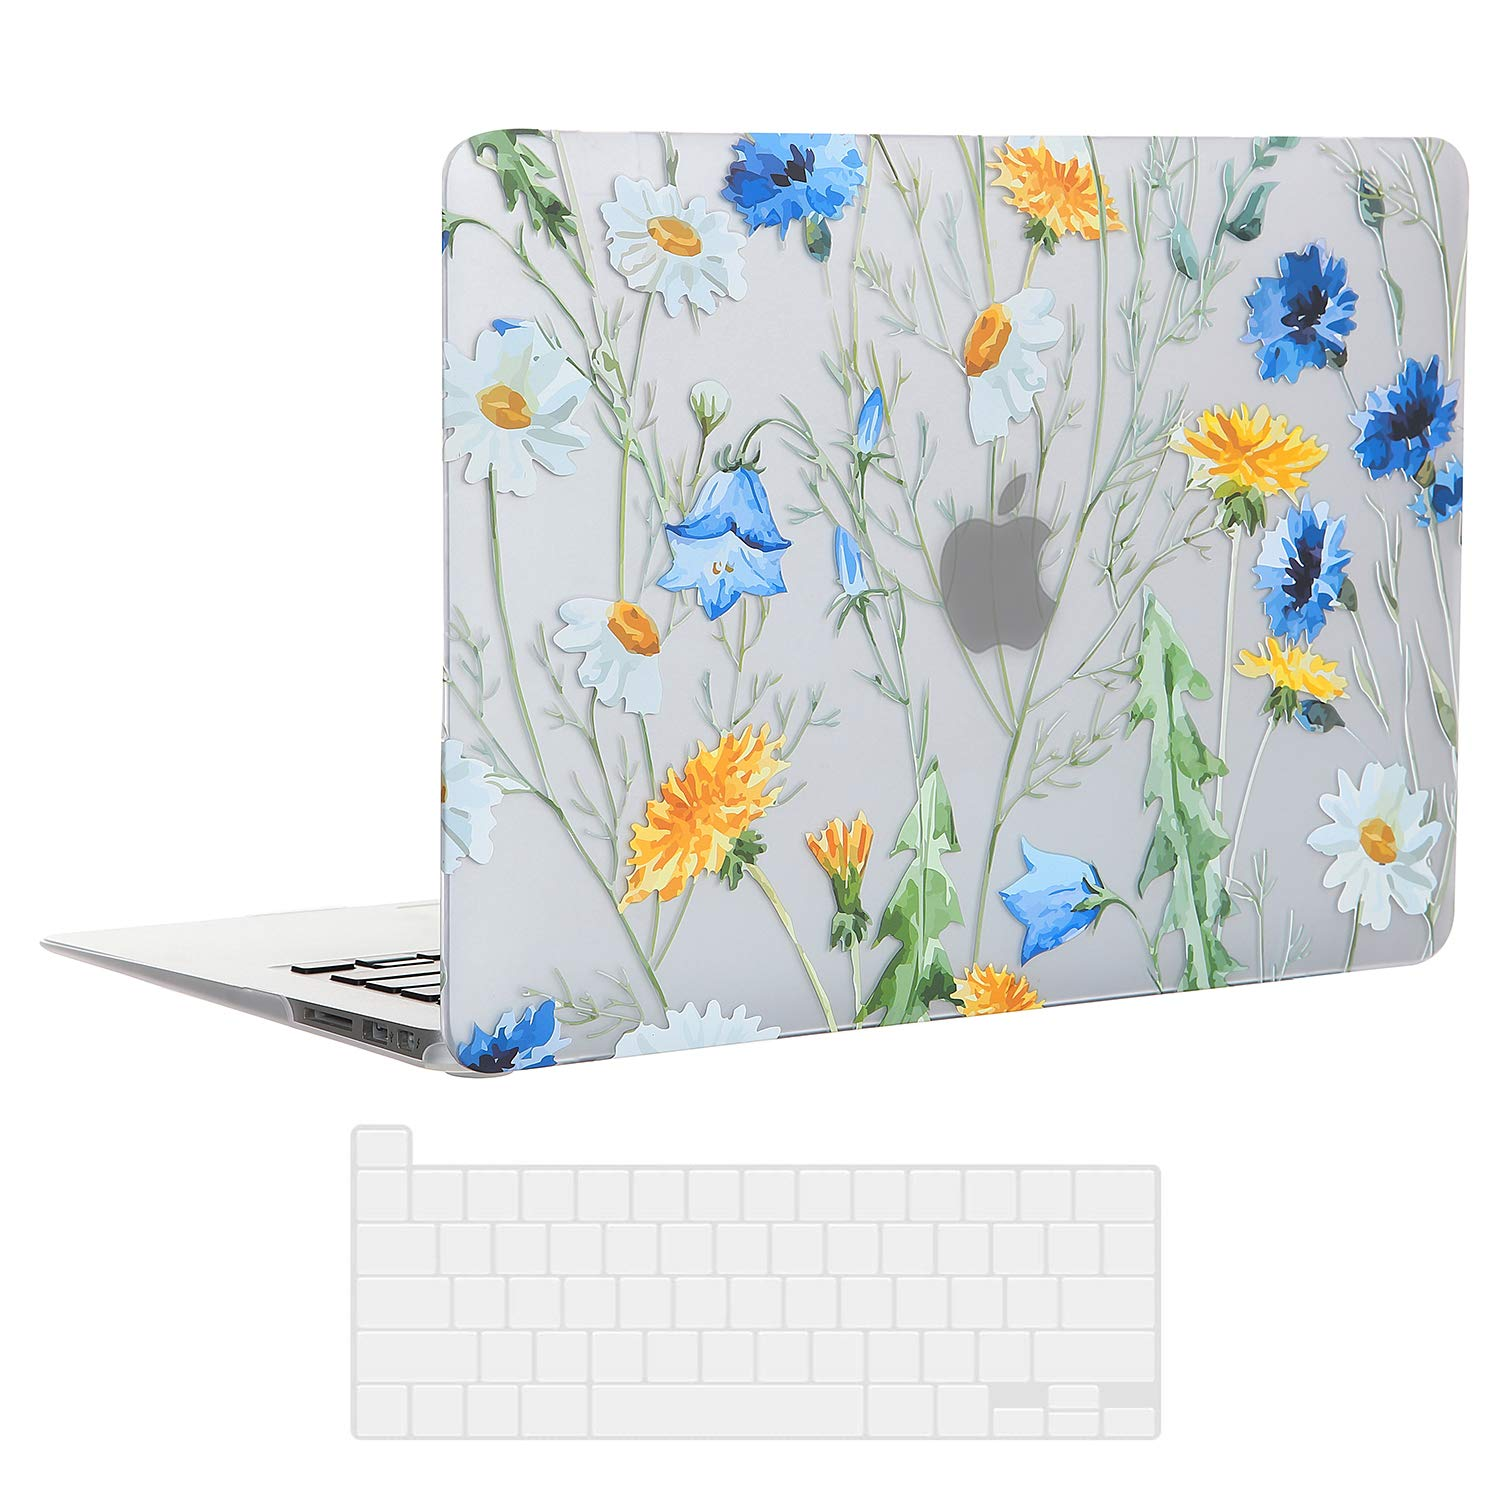 EkuaBot Floral Daisy MacBook Pro 13 inch Case & Transparent Keyboard Cover (A1425/A1502, 2012-2015 Release), Rubber Coated Hard Case Only Compatible MacBook Pro 13.3 with Retina Display (NO CD-ROM)